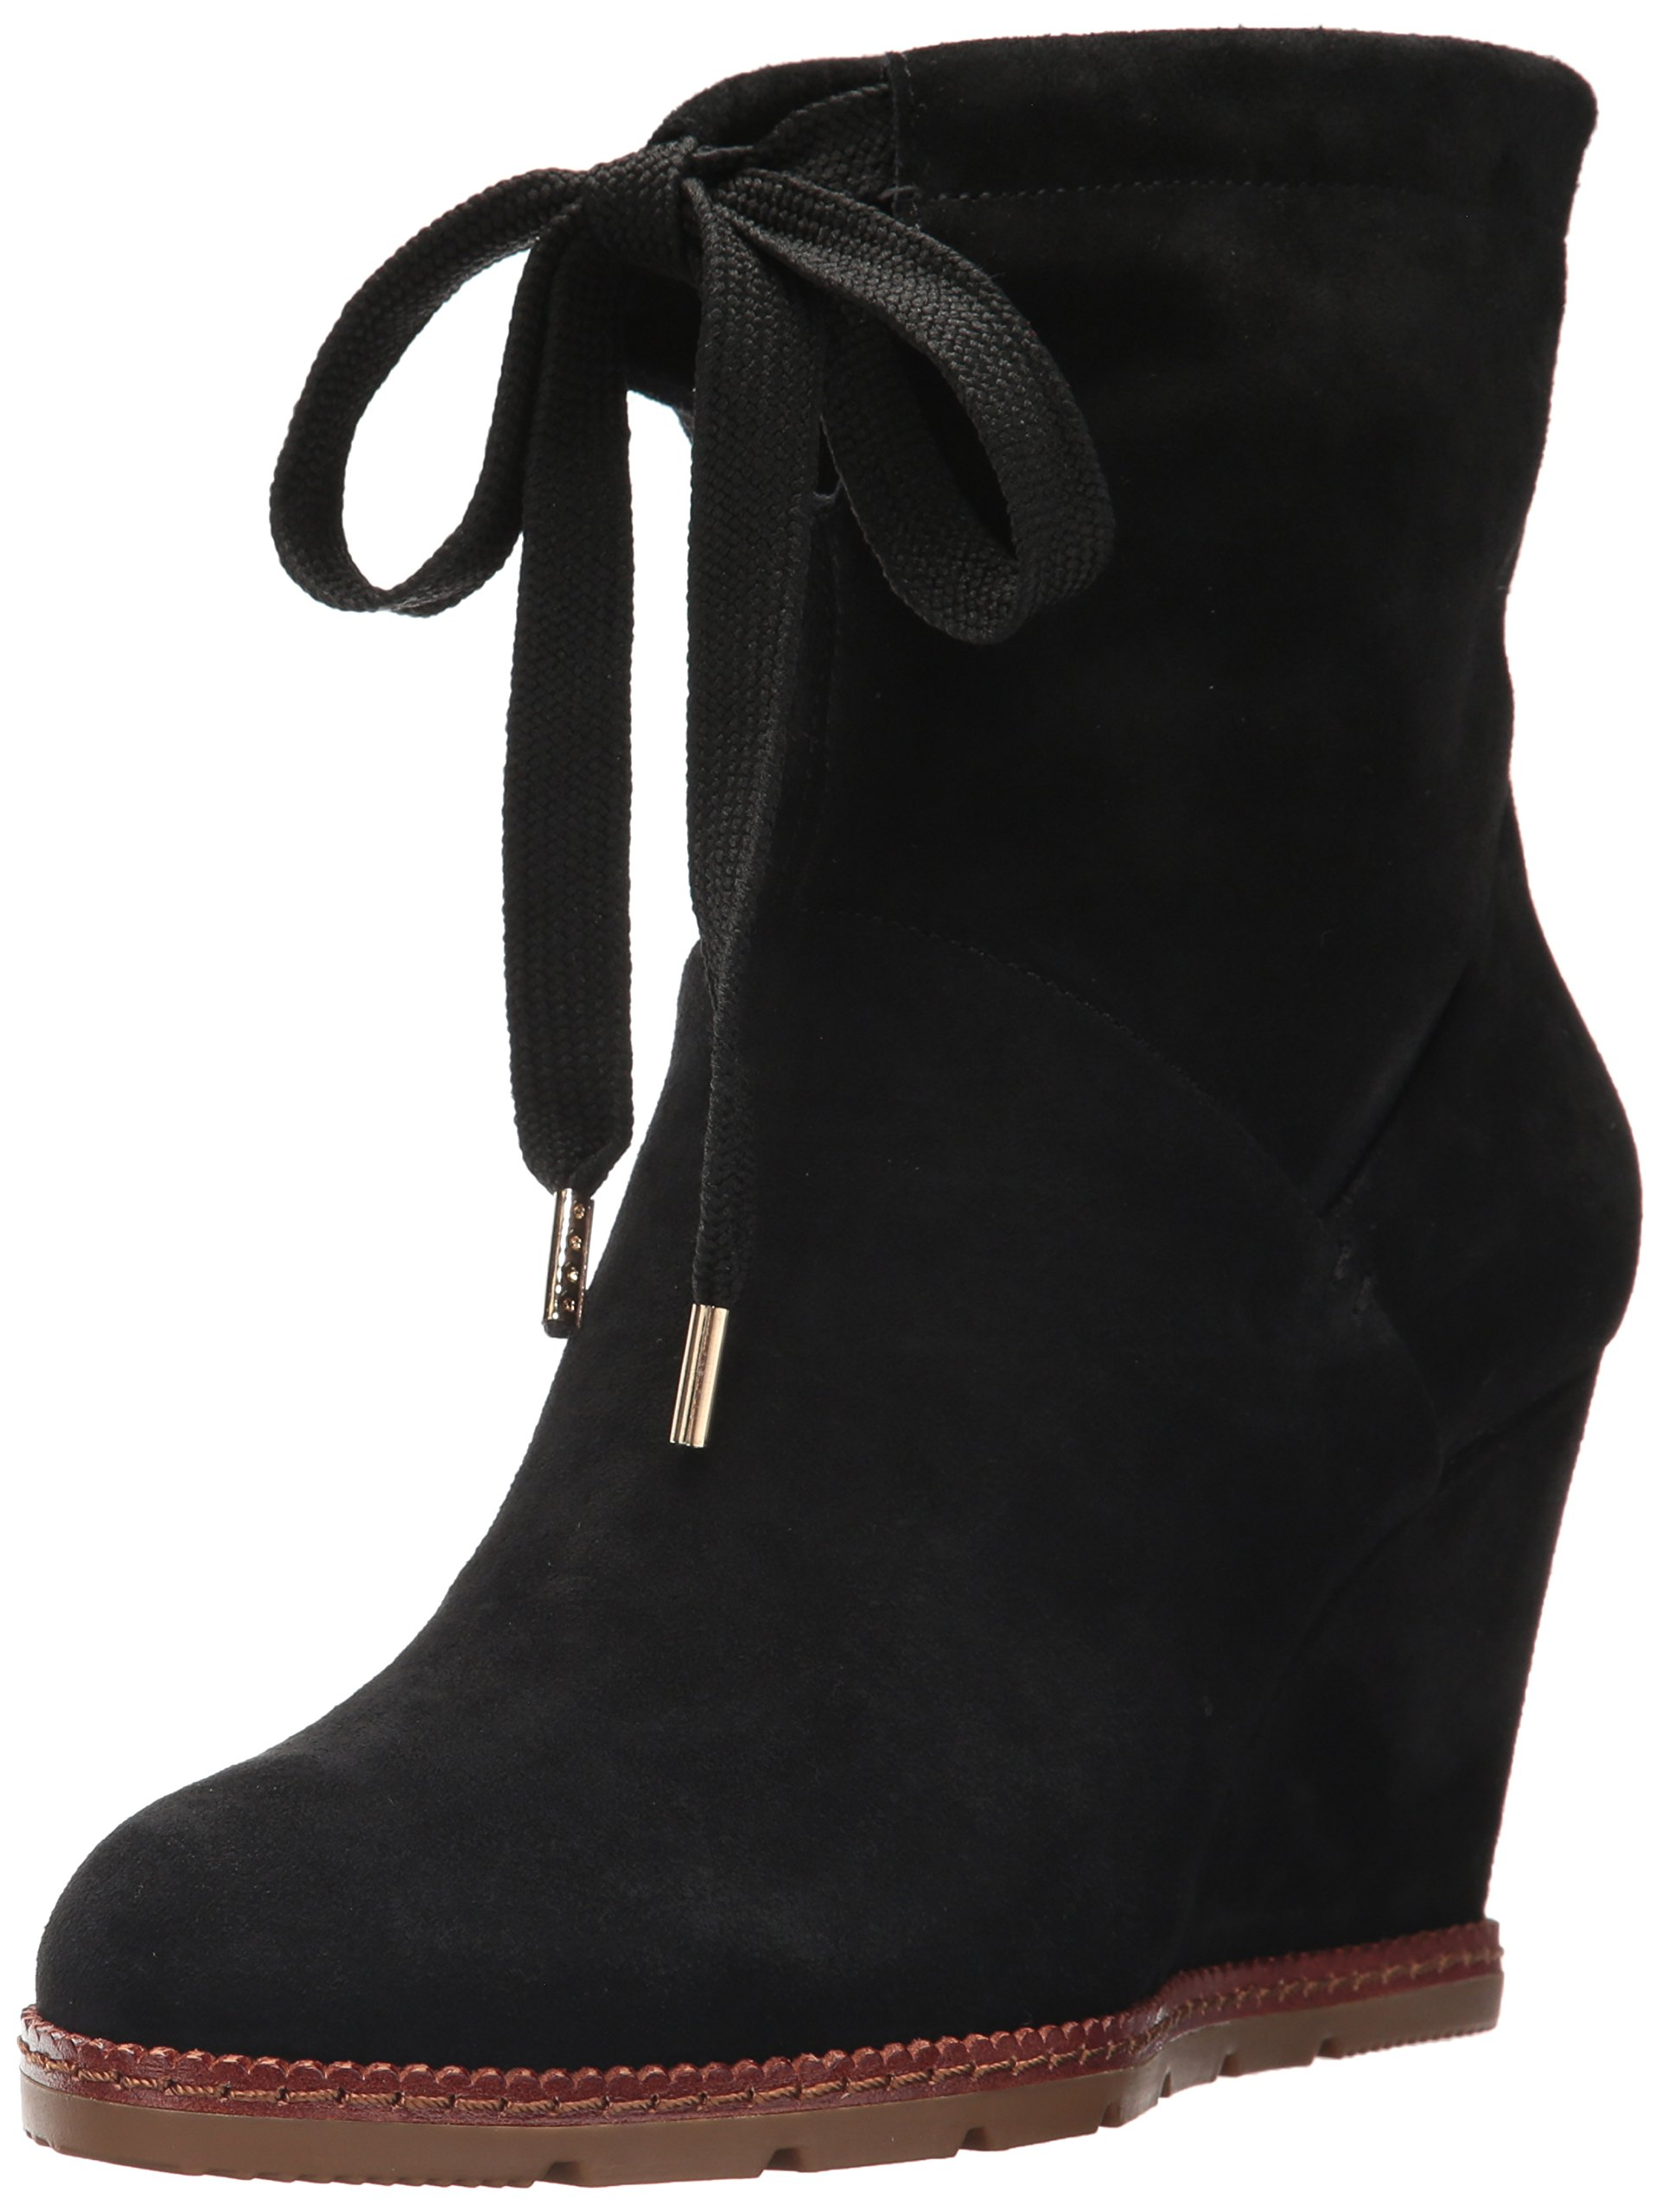 kate spade new york Women's Saunders Fashion Boot, Black, 7.5 M US